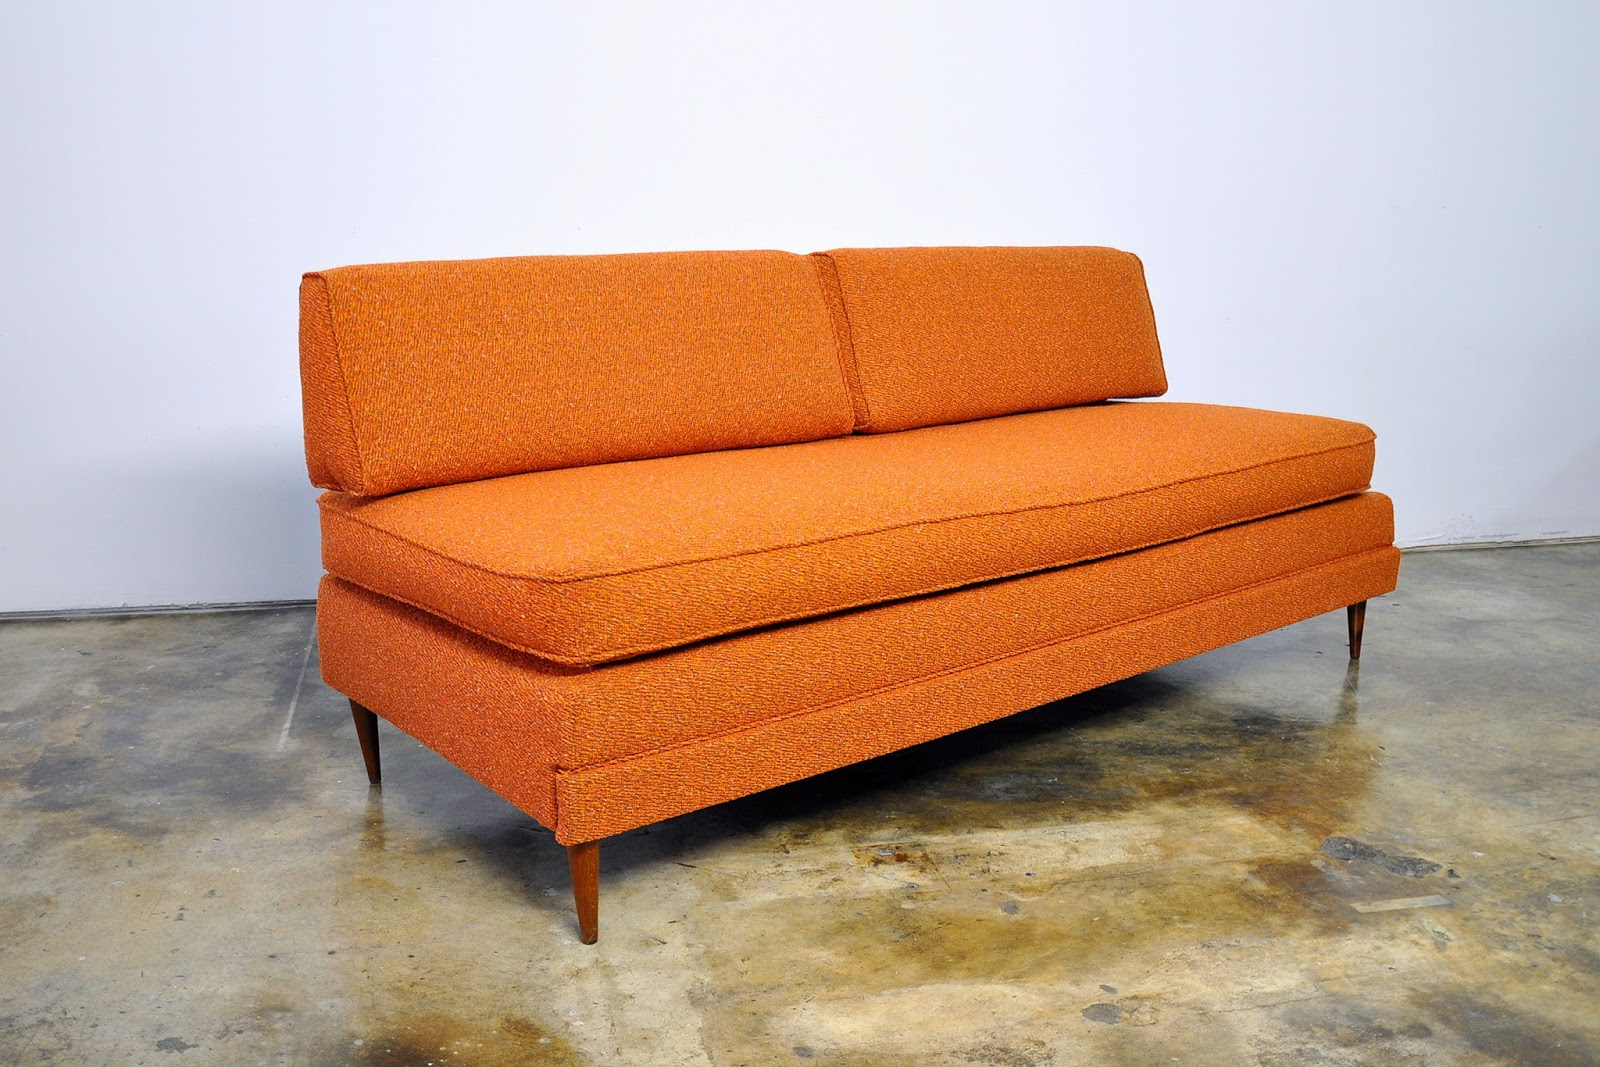 SELECT MODERN: Danish Modern Sofa Or Daybed With Trundle Pull Out Bed